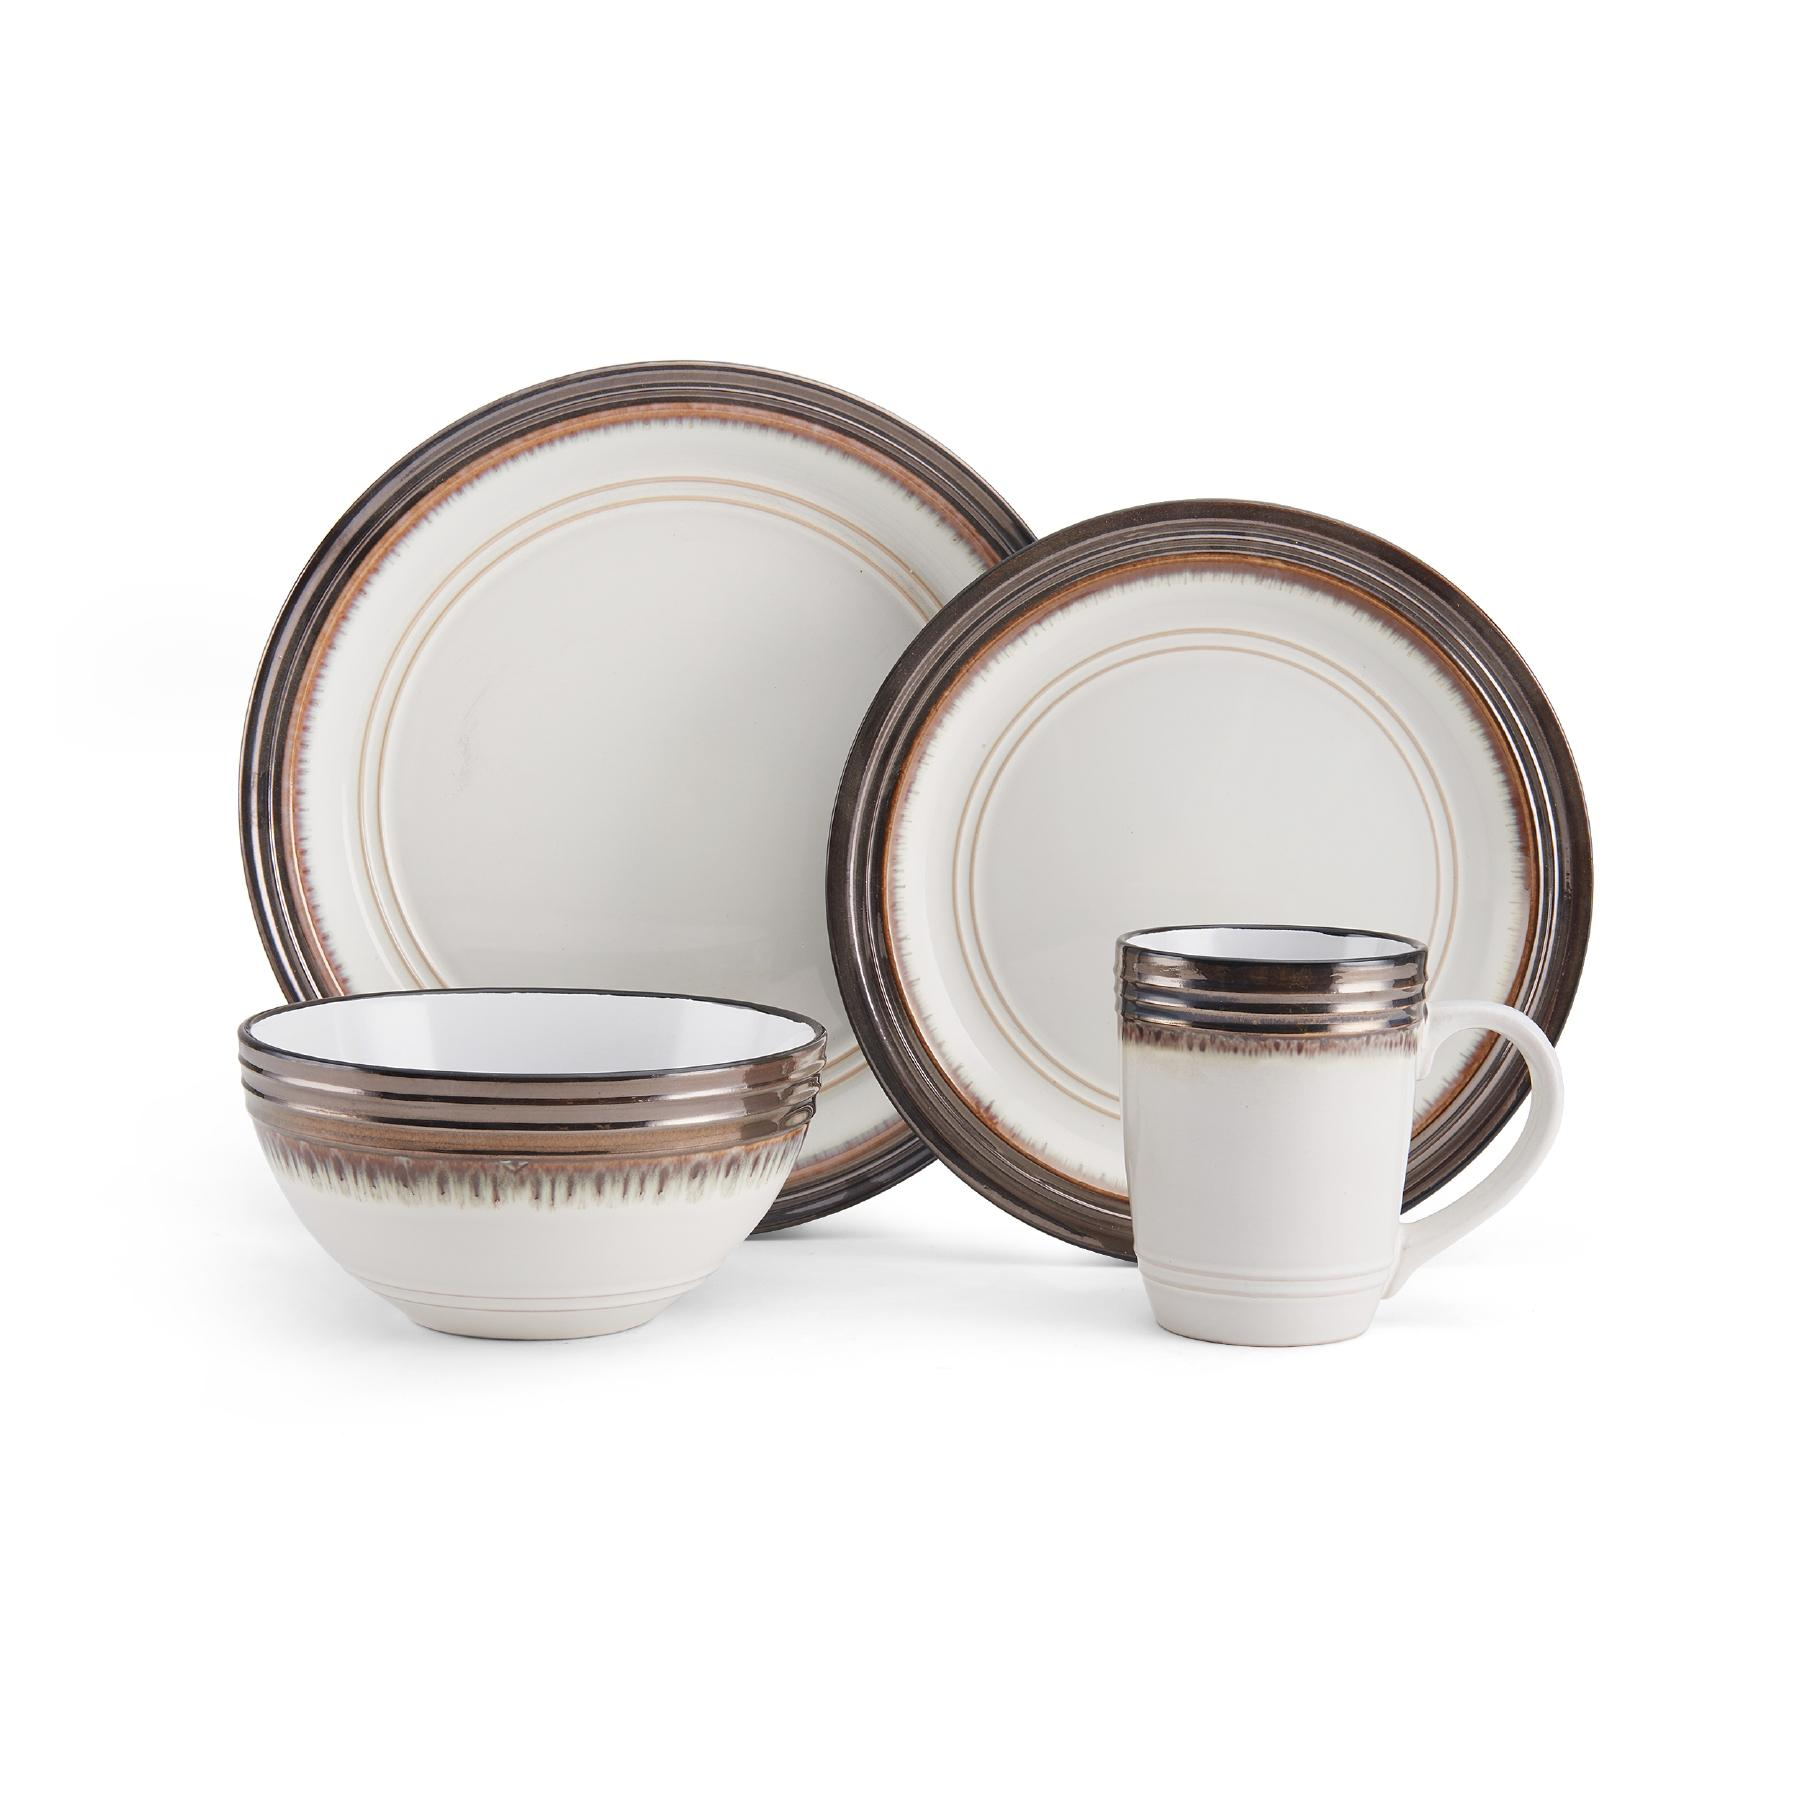 View larger  sc 1 st  Amazon.com & Amazon.com | Gourmet Basics by Mikasa Hayes 16-Piece Dinnerware Set ...